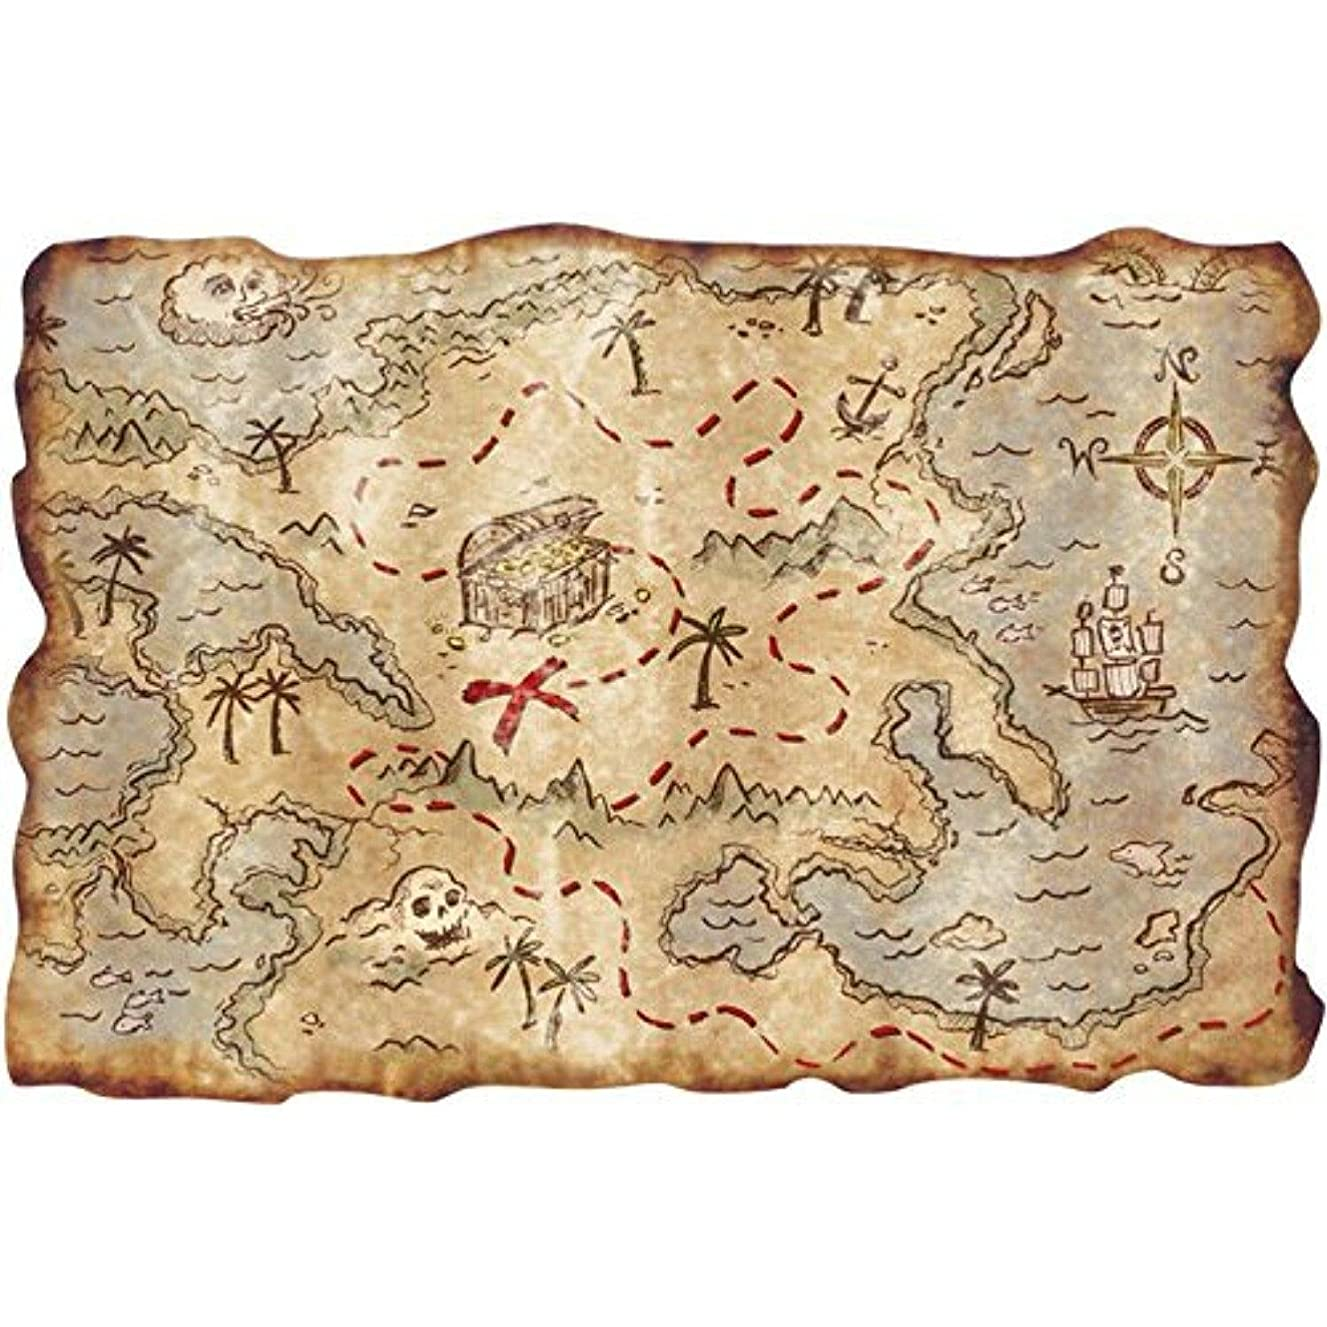 Pirate Map Edible Icing image topper for 1/4 sheet cake